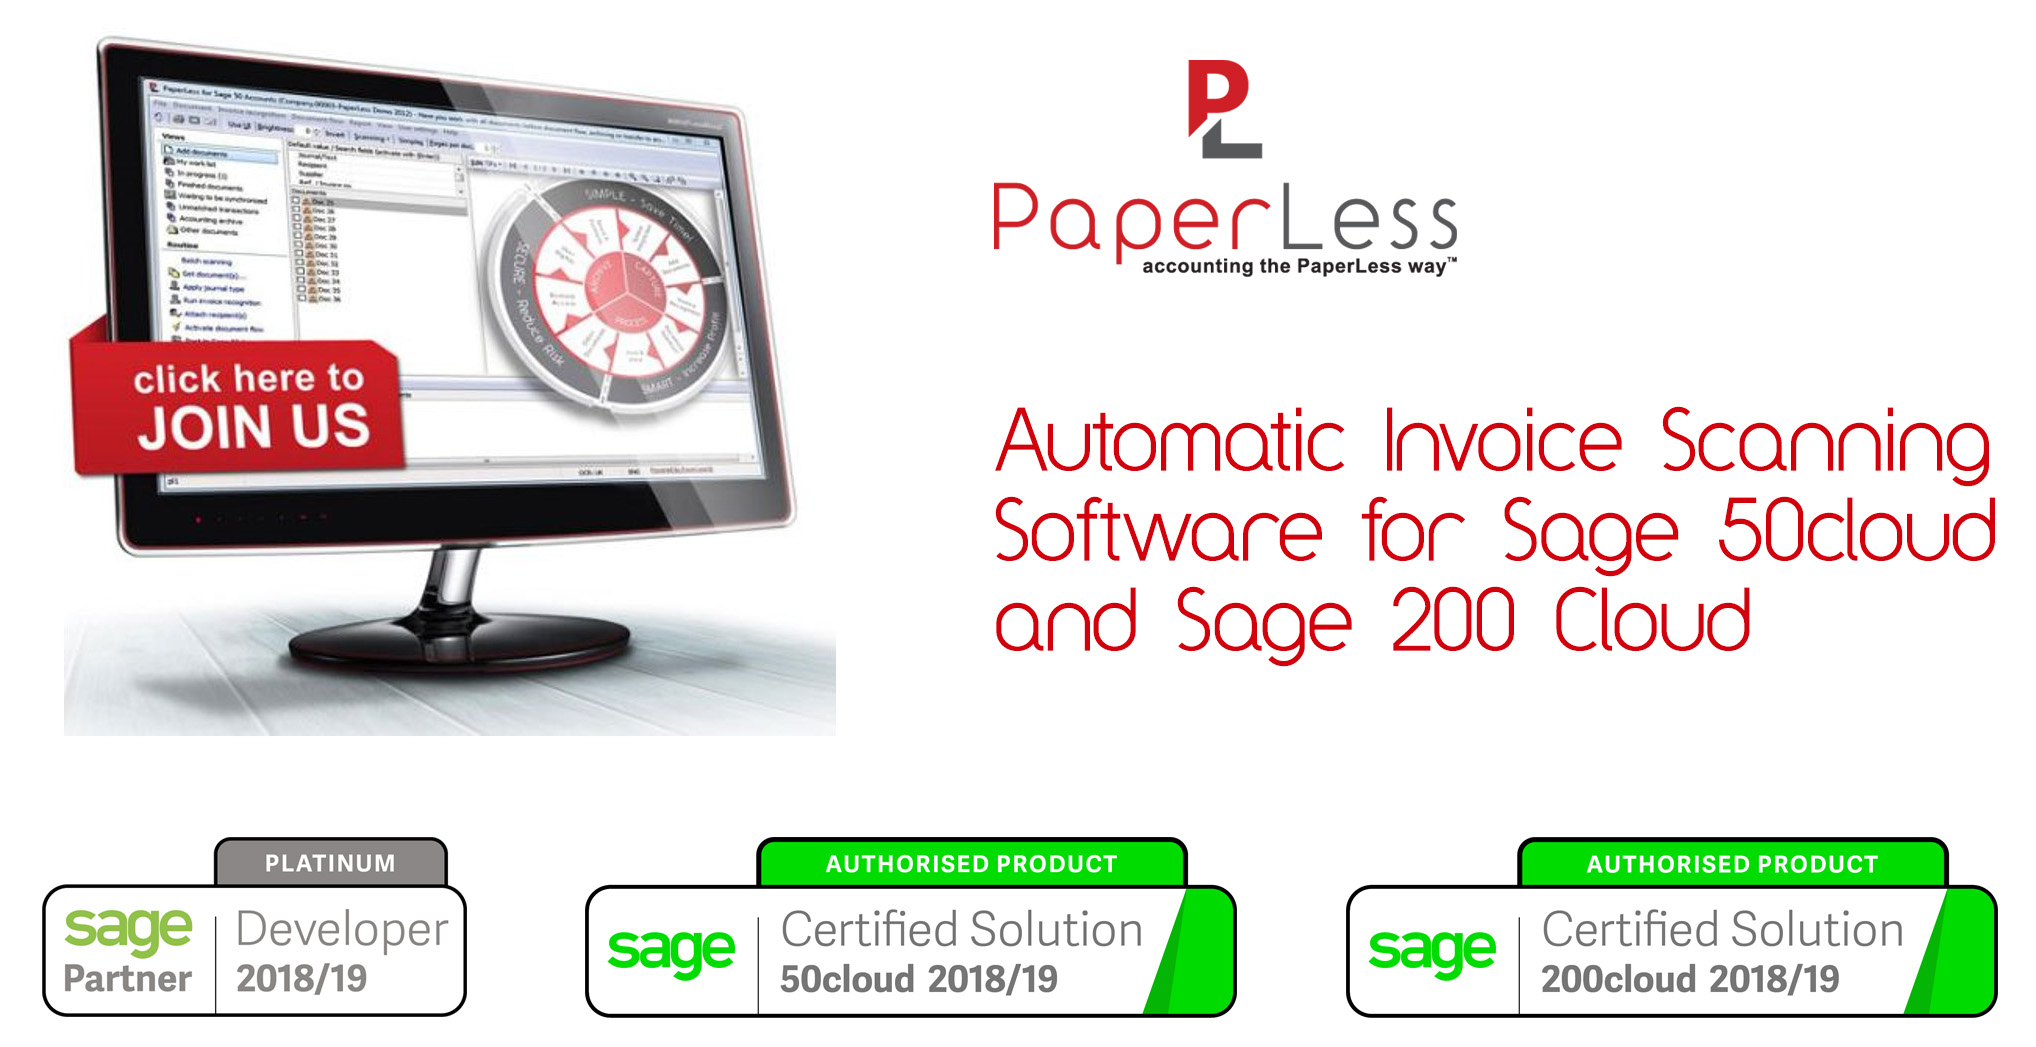 Click here to find out more about Invoice Scanning Software for Sage